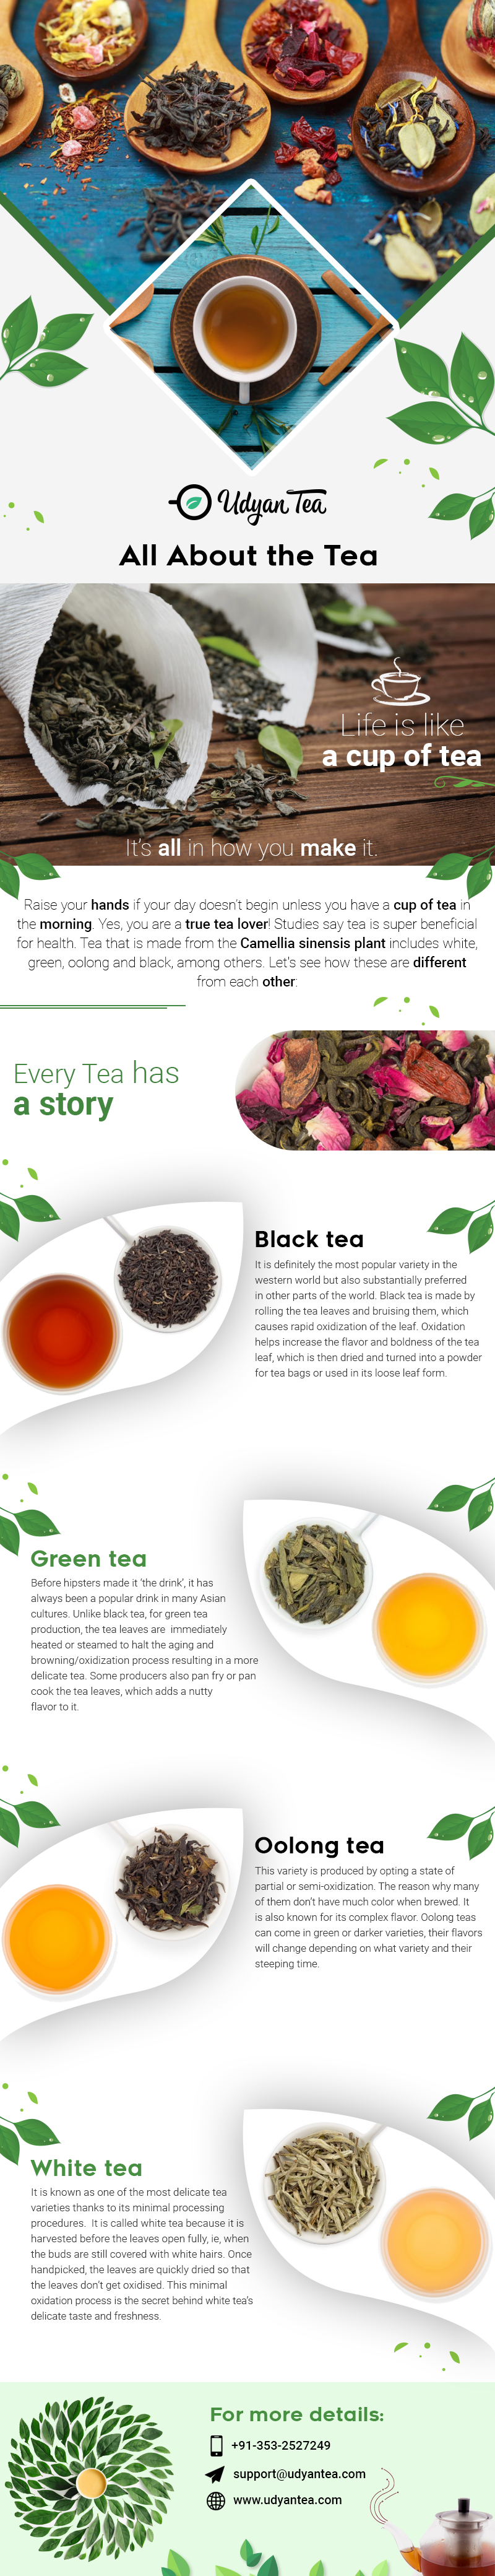 All About The Tea